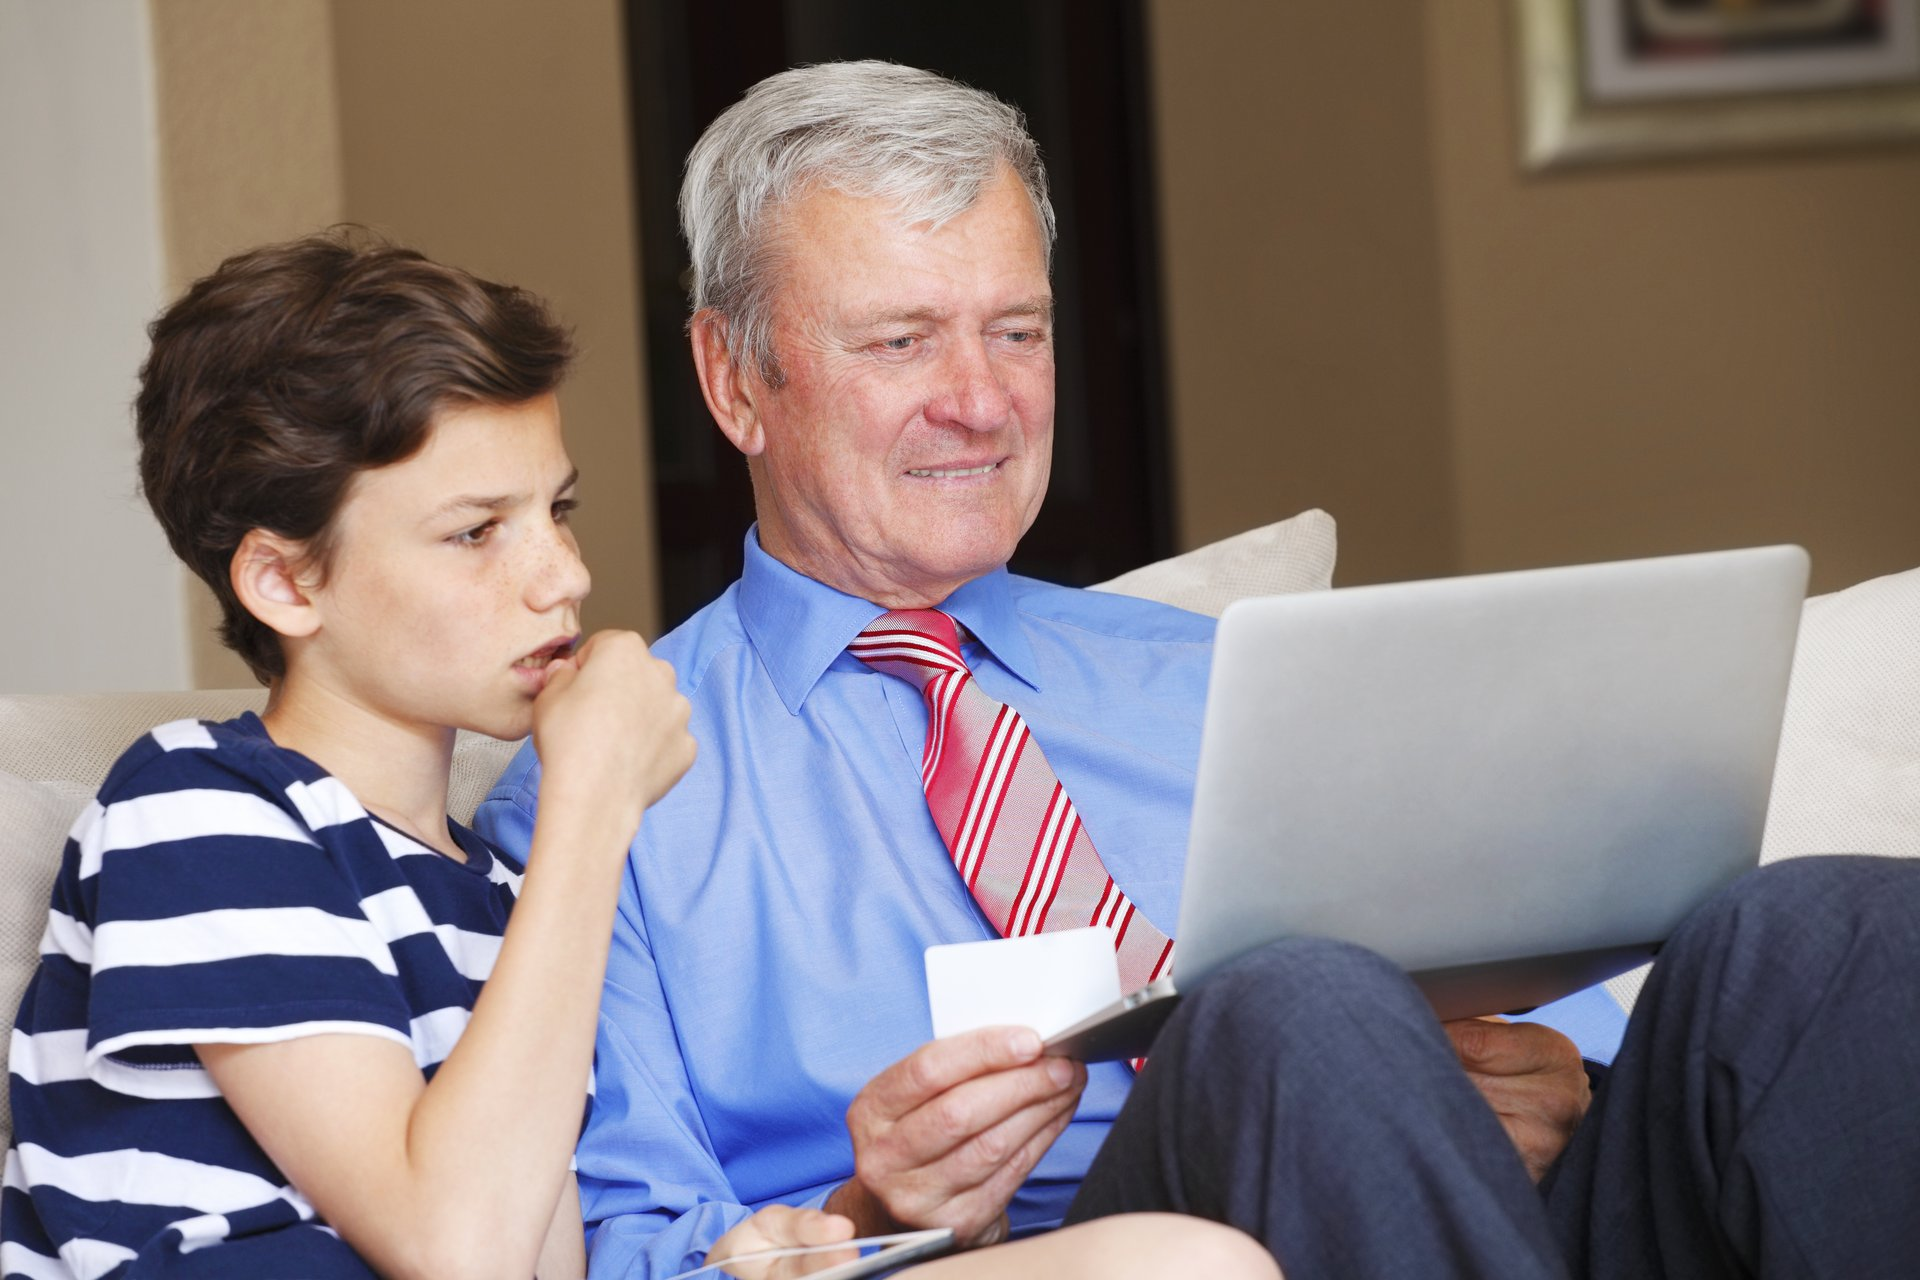 Man teaching his grandchild how to use a credit card